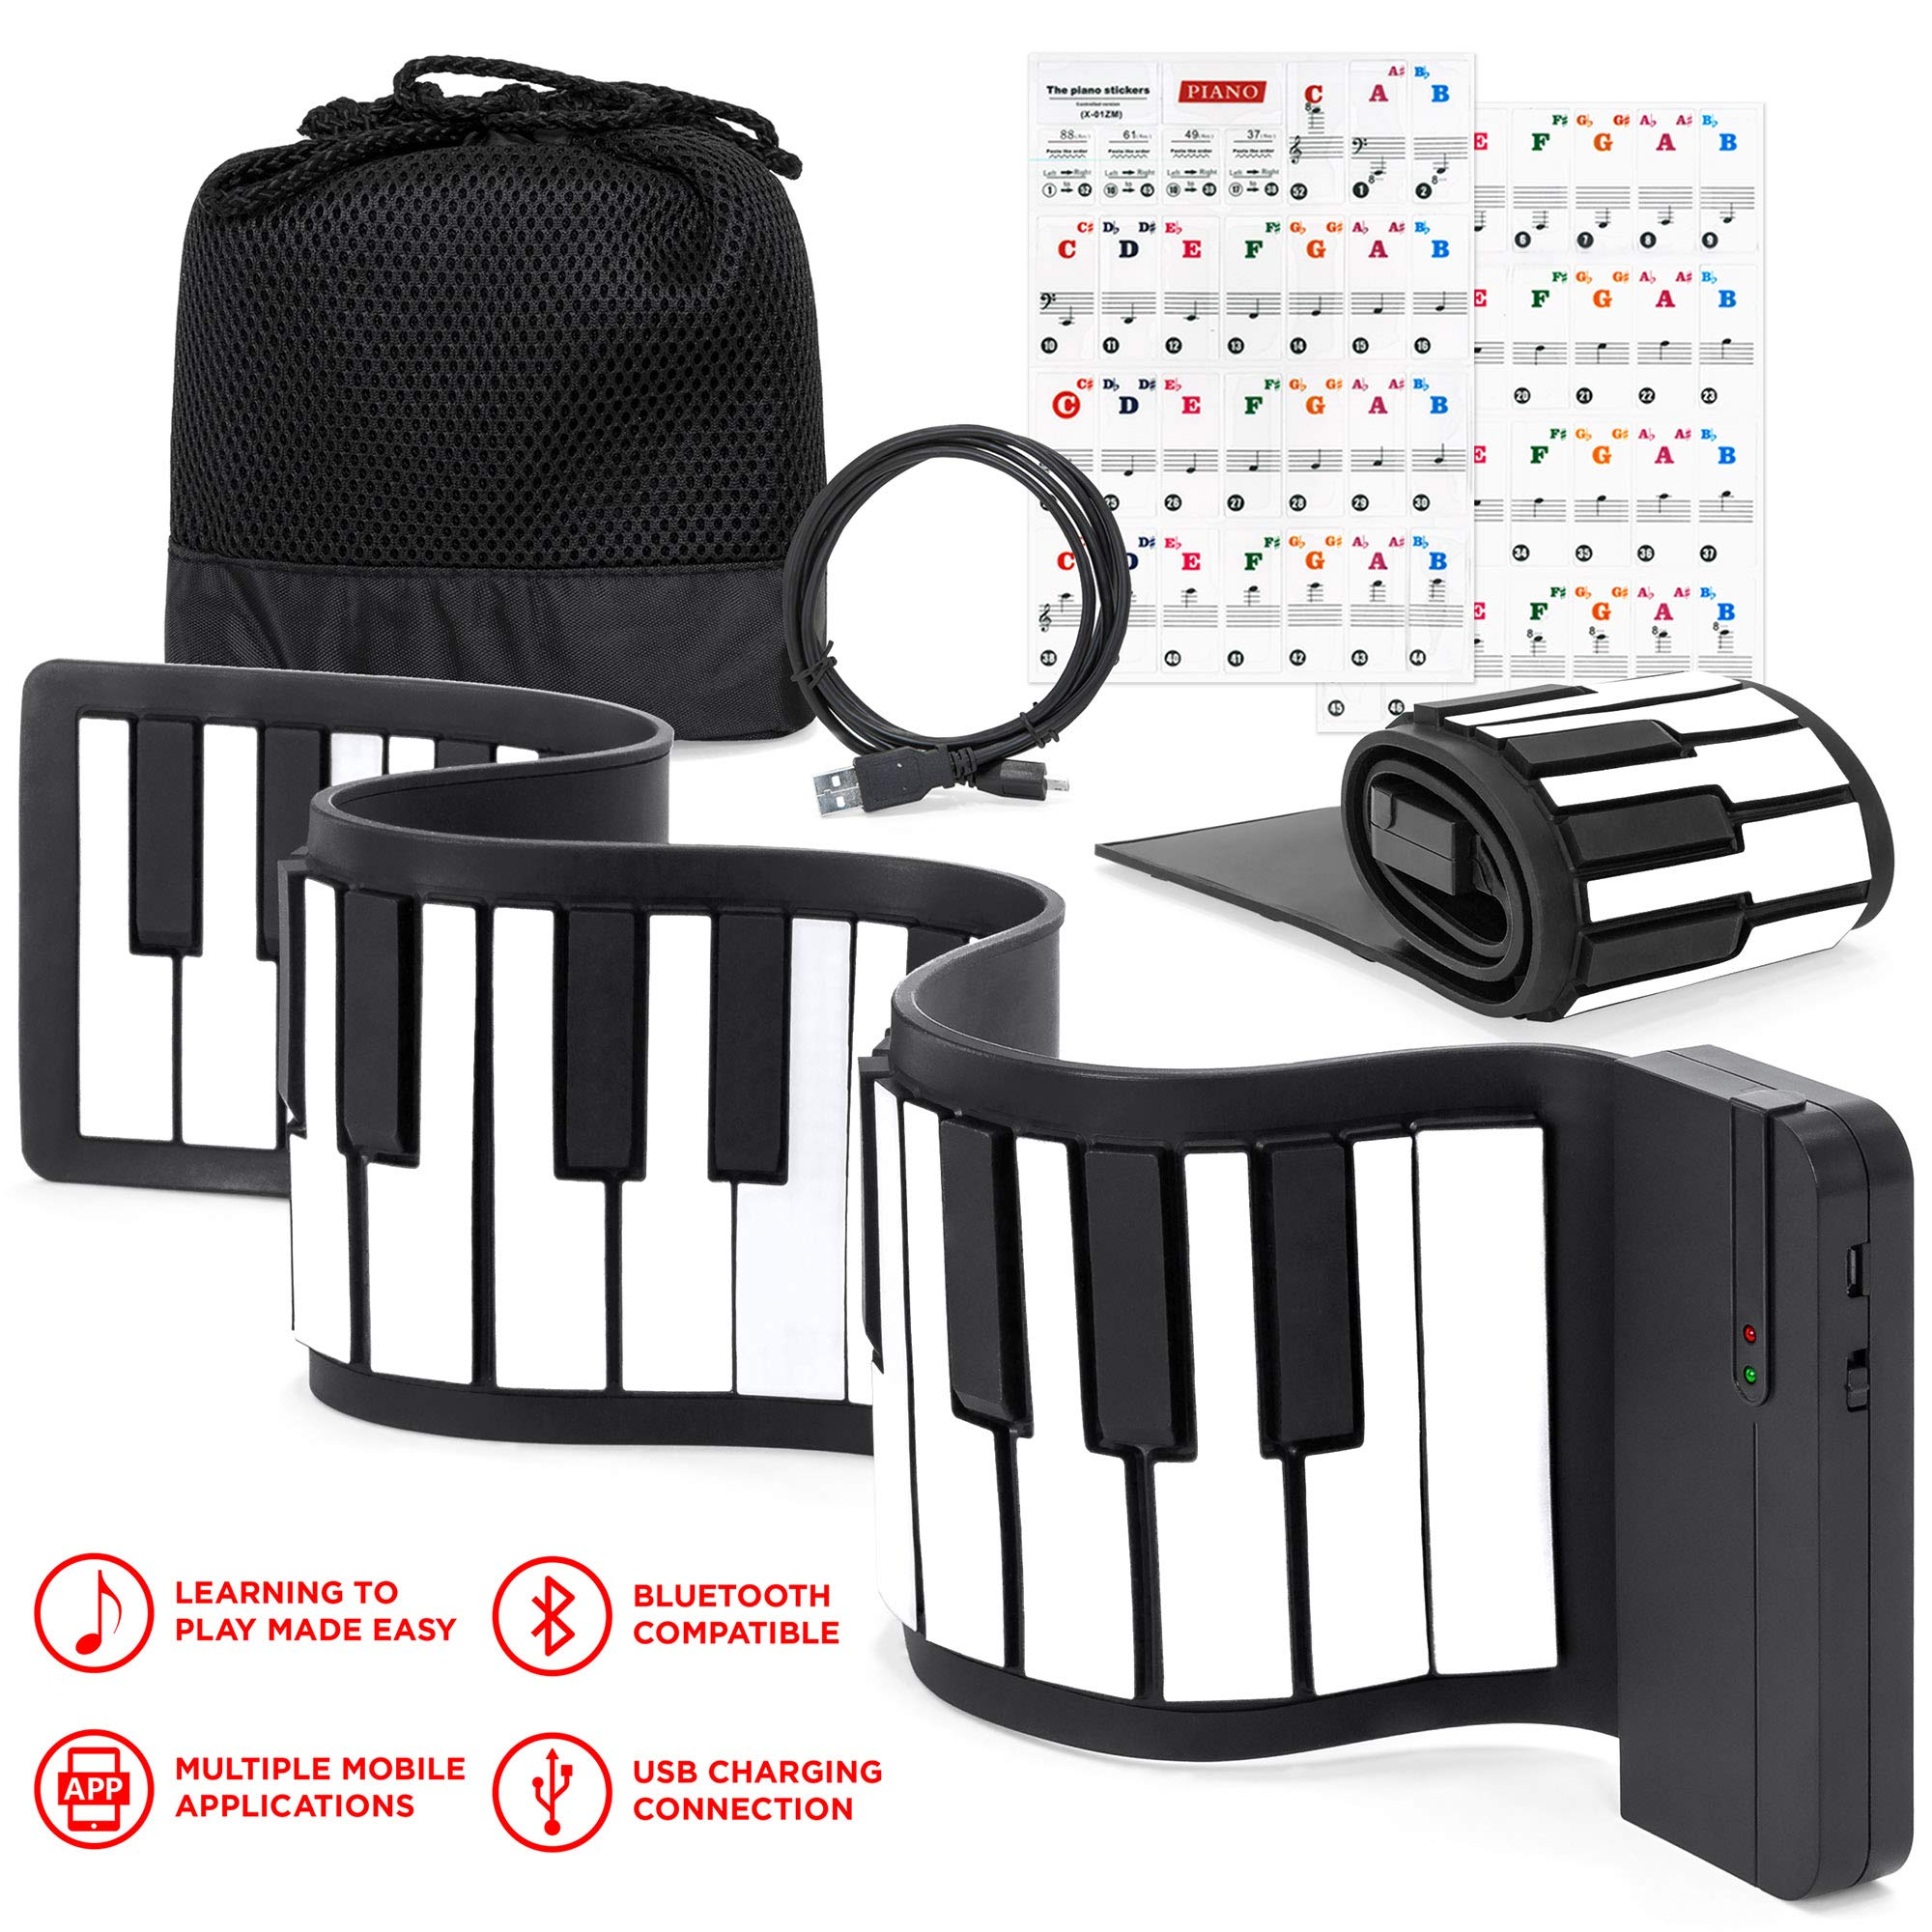 Best Choice Products Kids 49-Key Portable Flexible Roll-Up Piano Keyboard Musical Educational Toy Instrument w/Learn-To-Play App Game, Bluetooth Phone Pairing, Note Labels, USB Charging - White by Best Choice Products (Image #1)